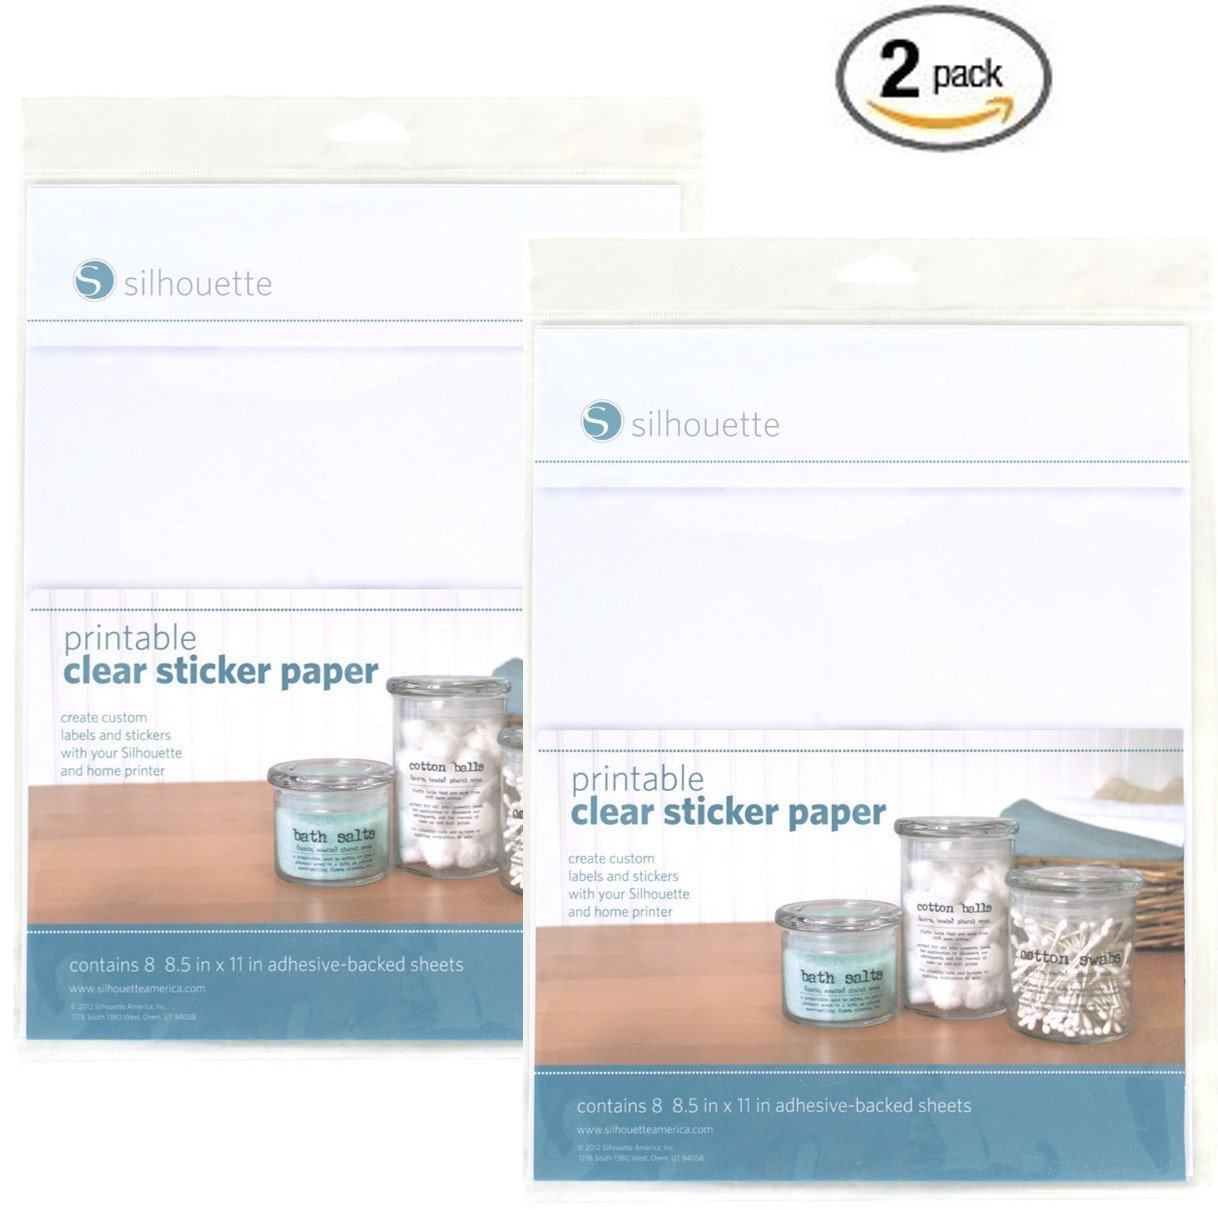 amazon com silhouette printable clear sticker paper arts crafts